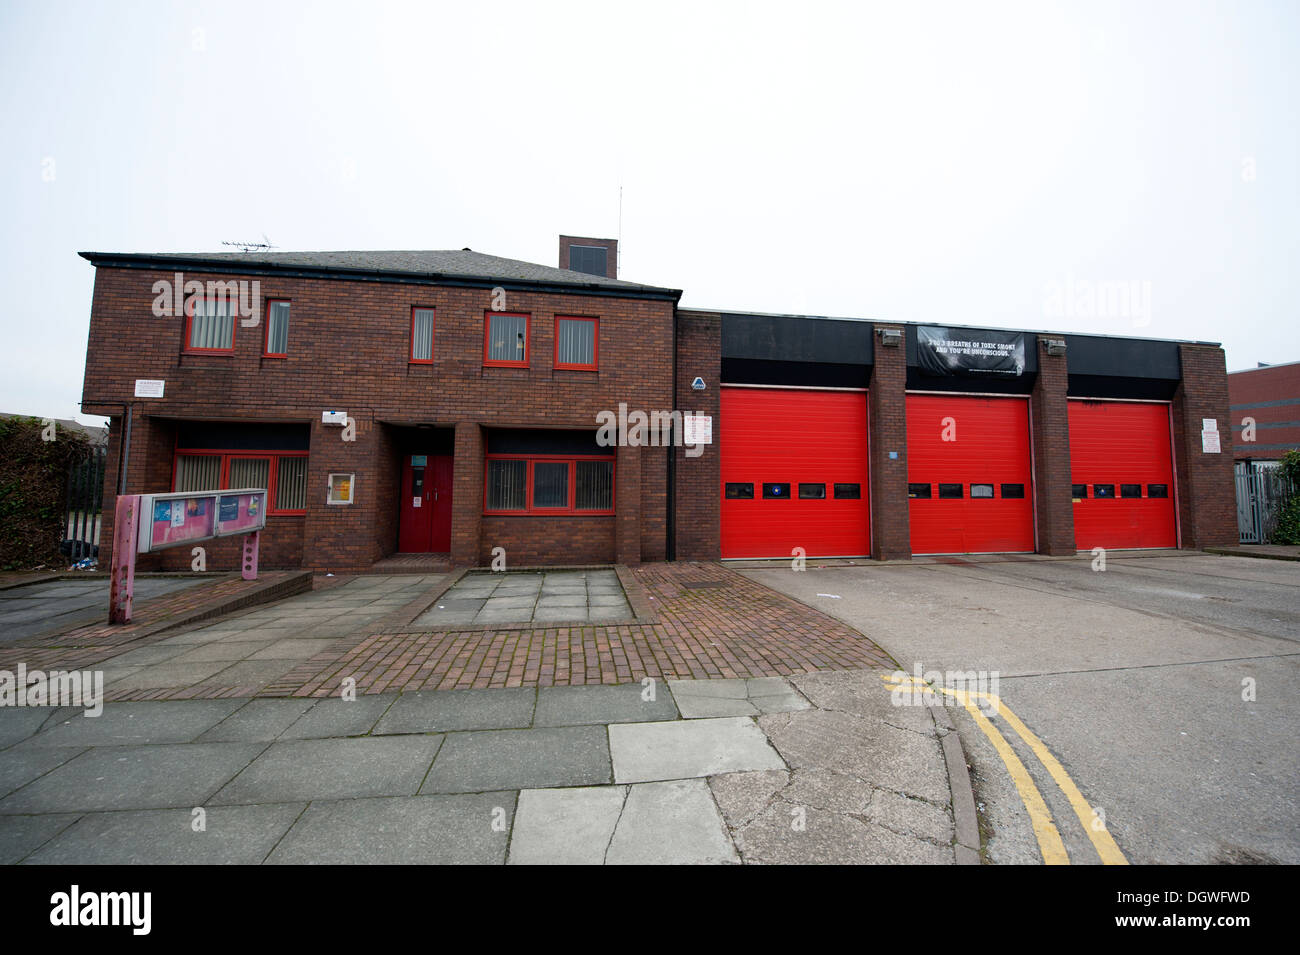 Fire Station House UK 3 Three Red Doors - Stock Image